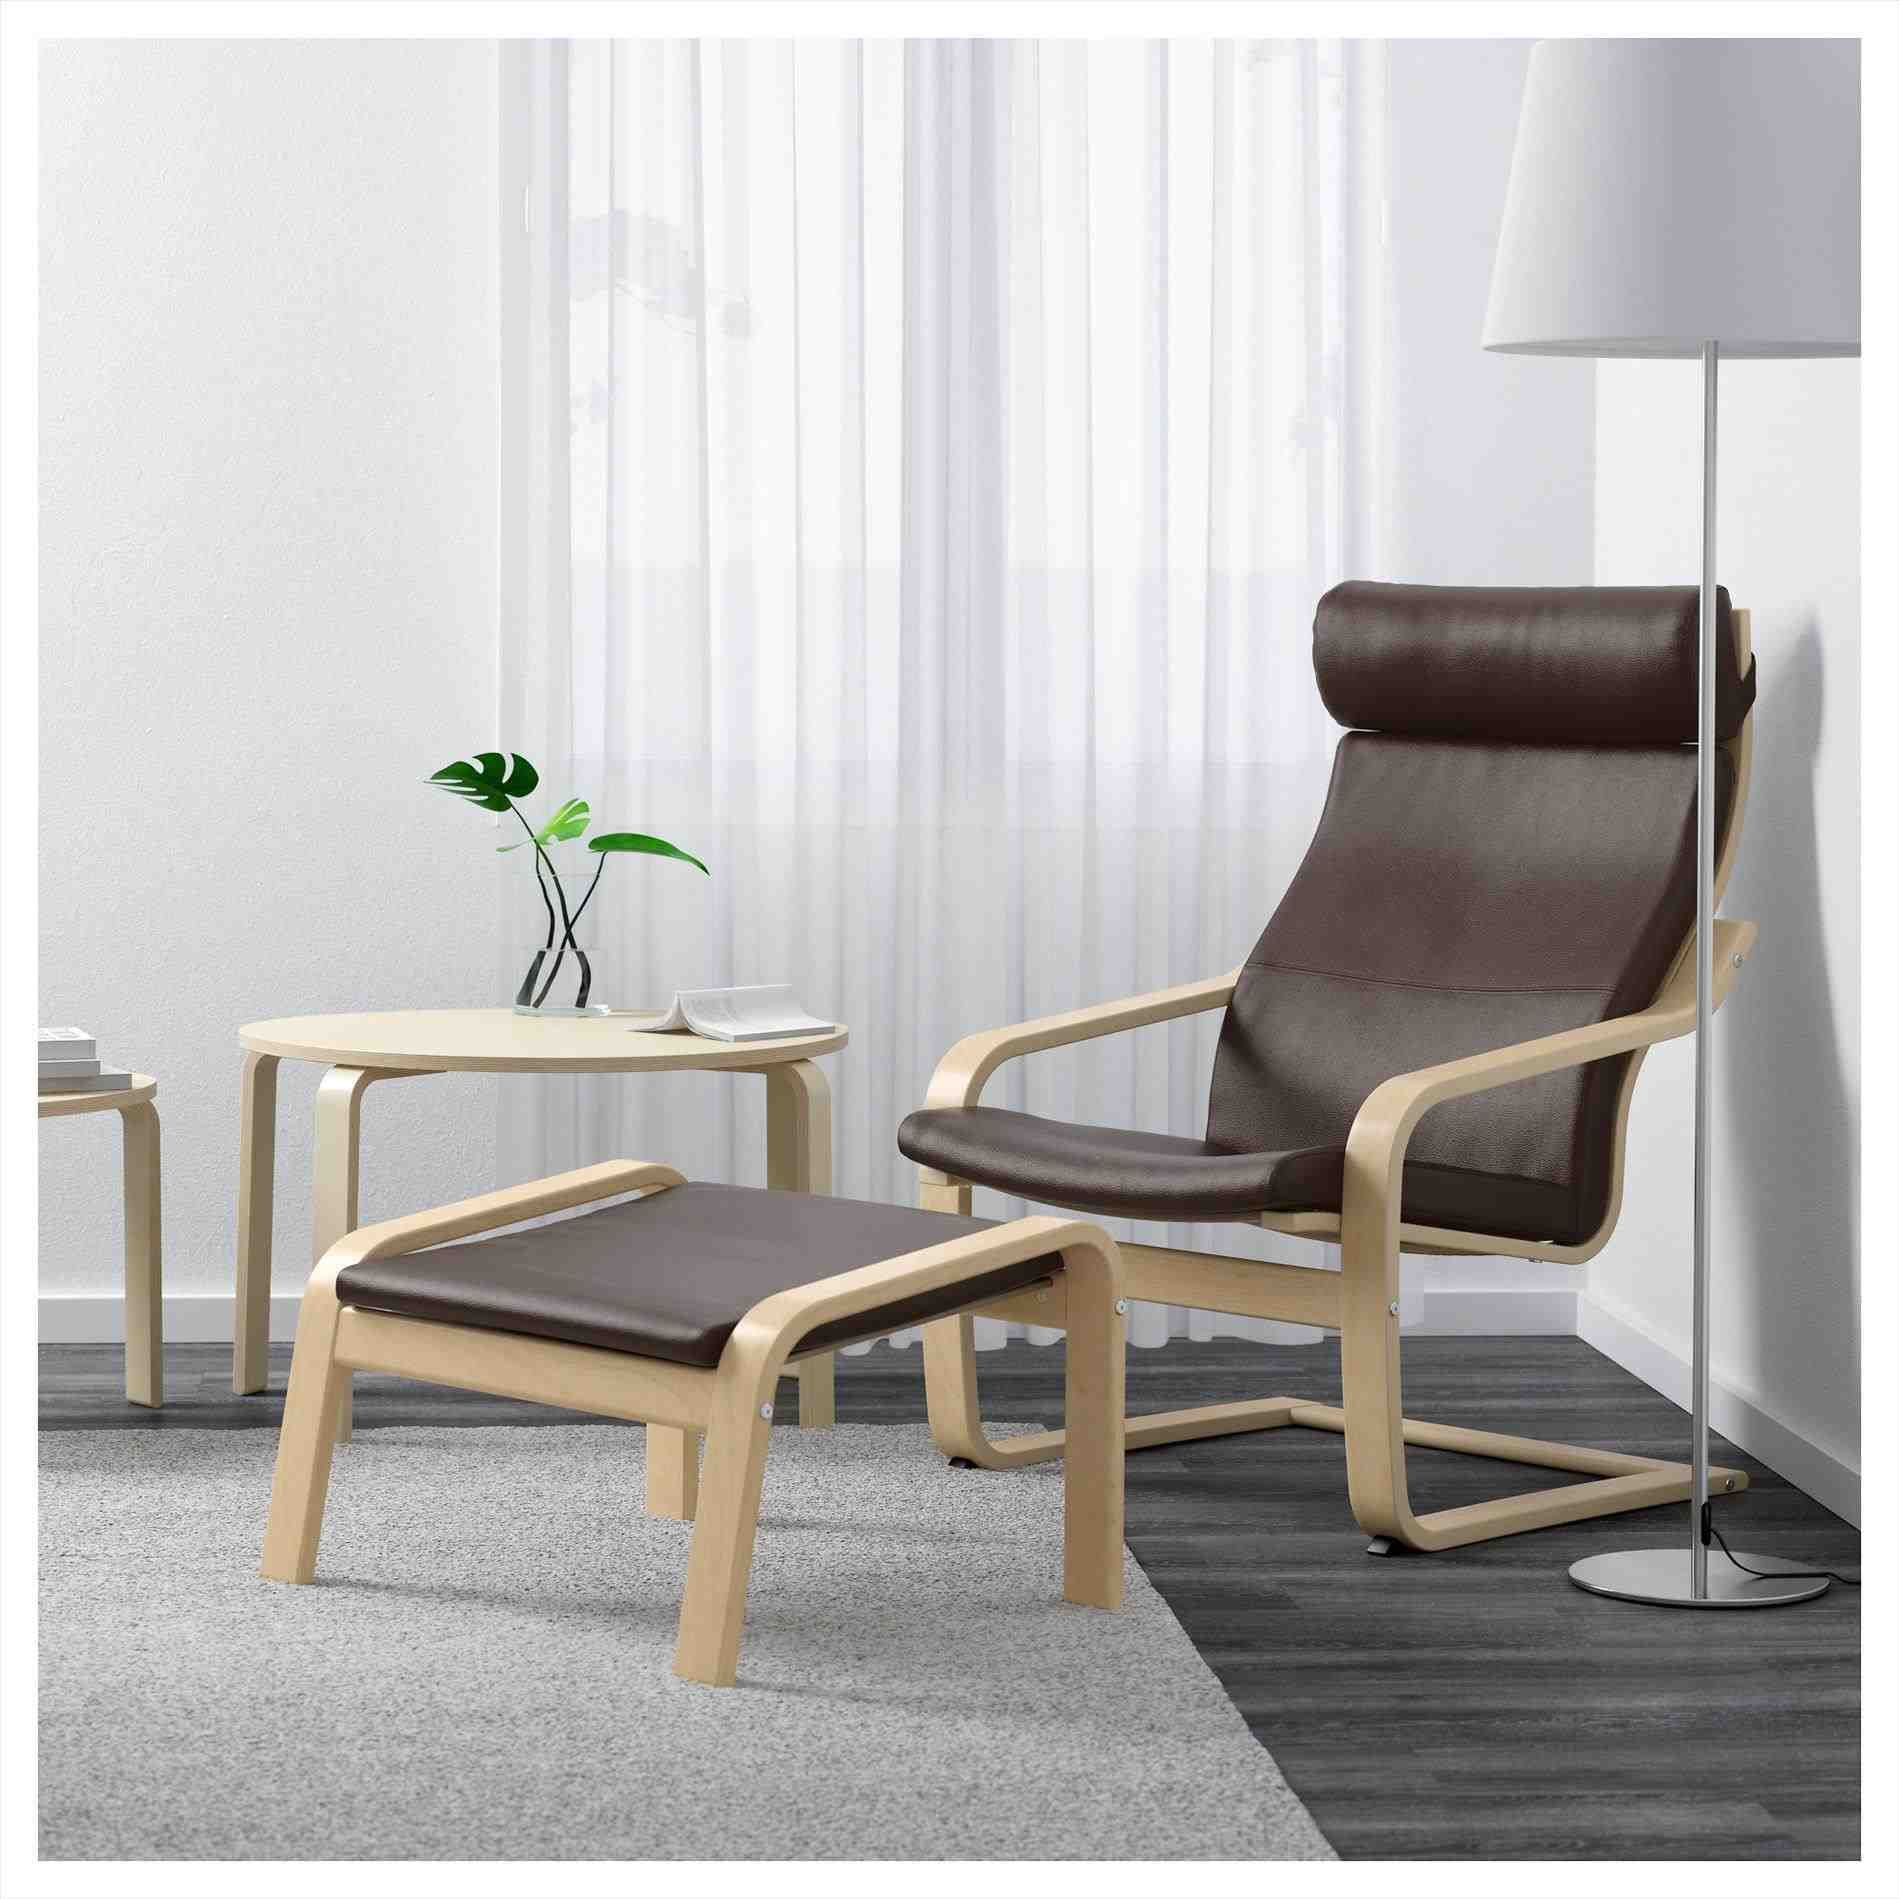 Chair And Ottoman Set Ikea Ikea Leather Chair Chair And Ottoman